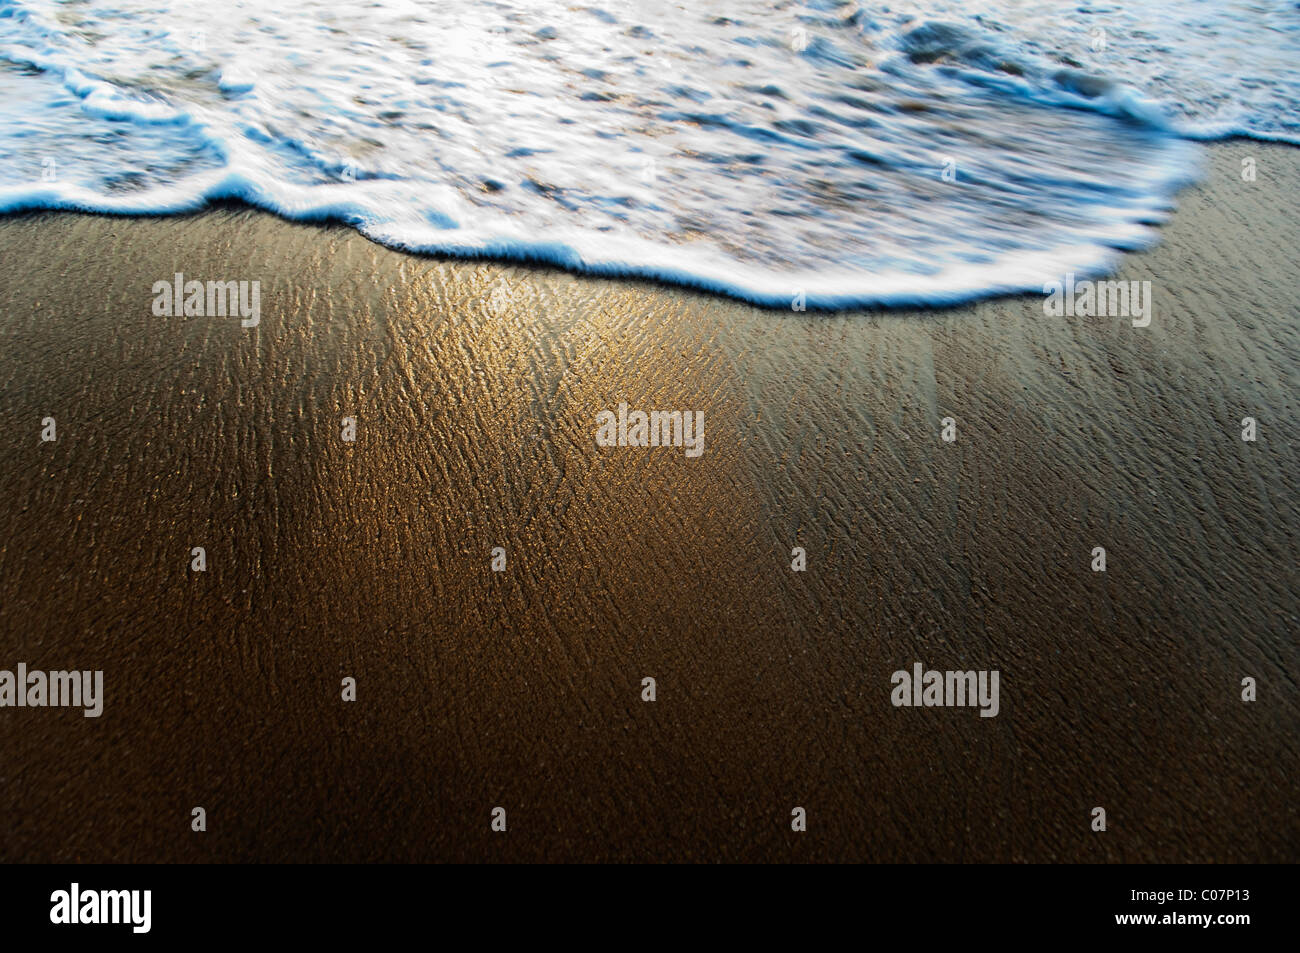 Portrait de surf sur la plage, Goa, Inde Photo Stock